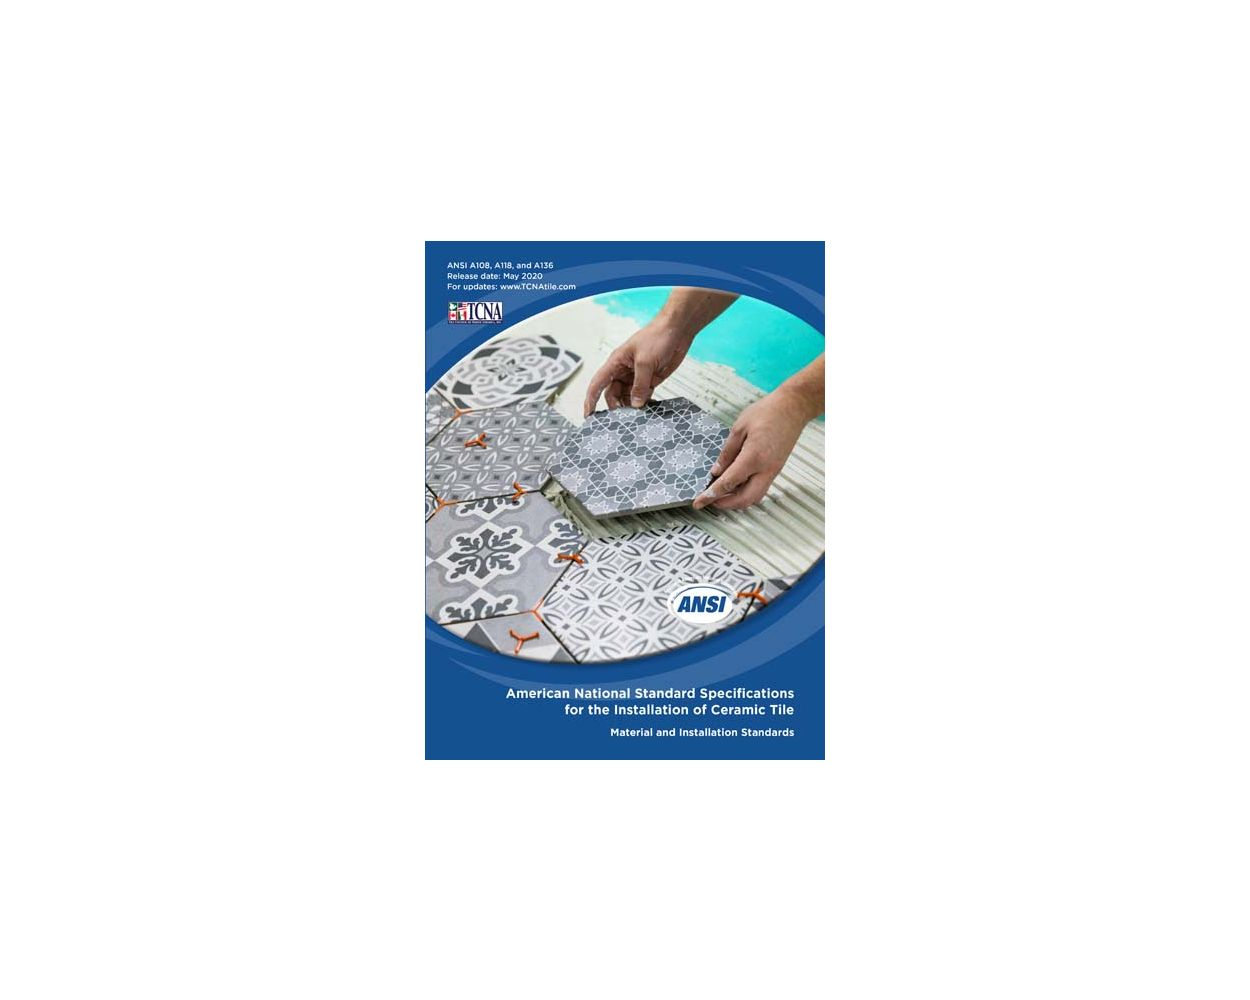 ansi a108 a118 and a136 american national standard specifications for the installation of ceramic tile 2020 edition